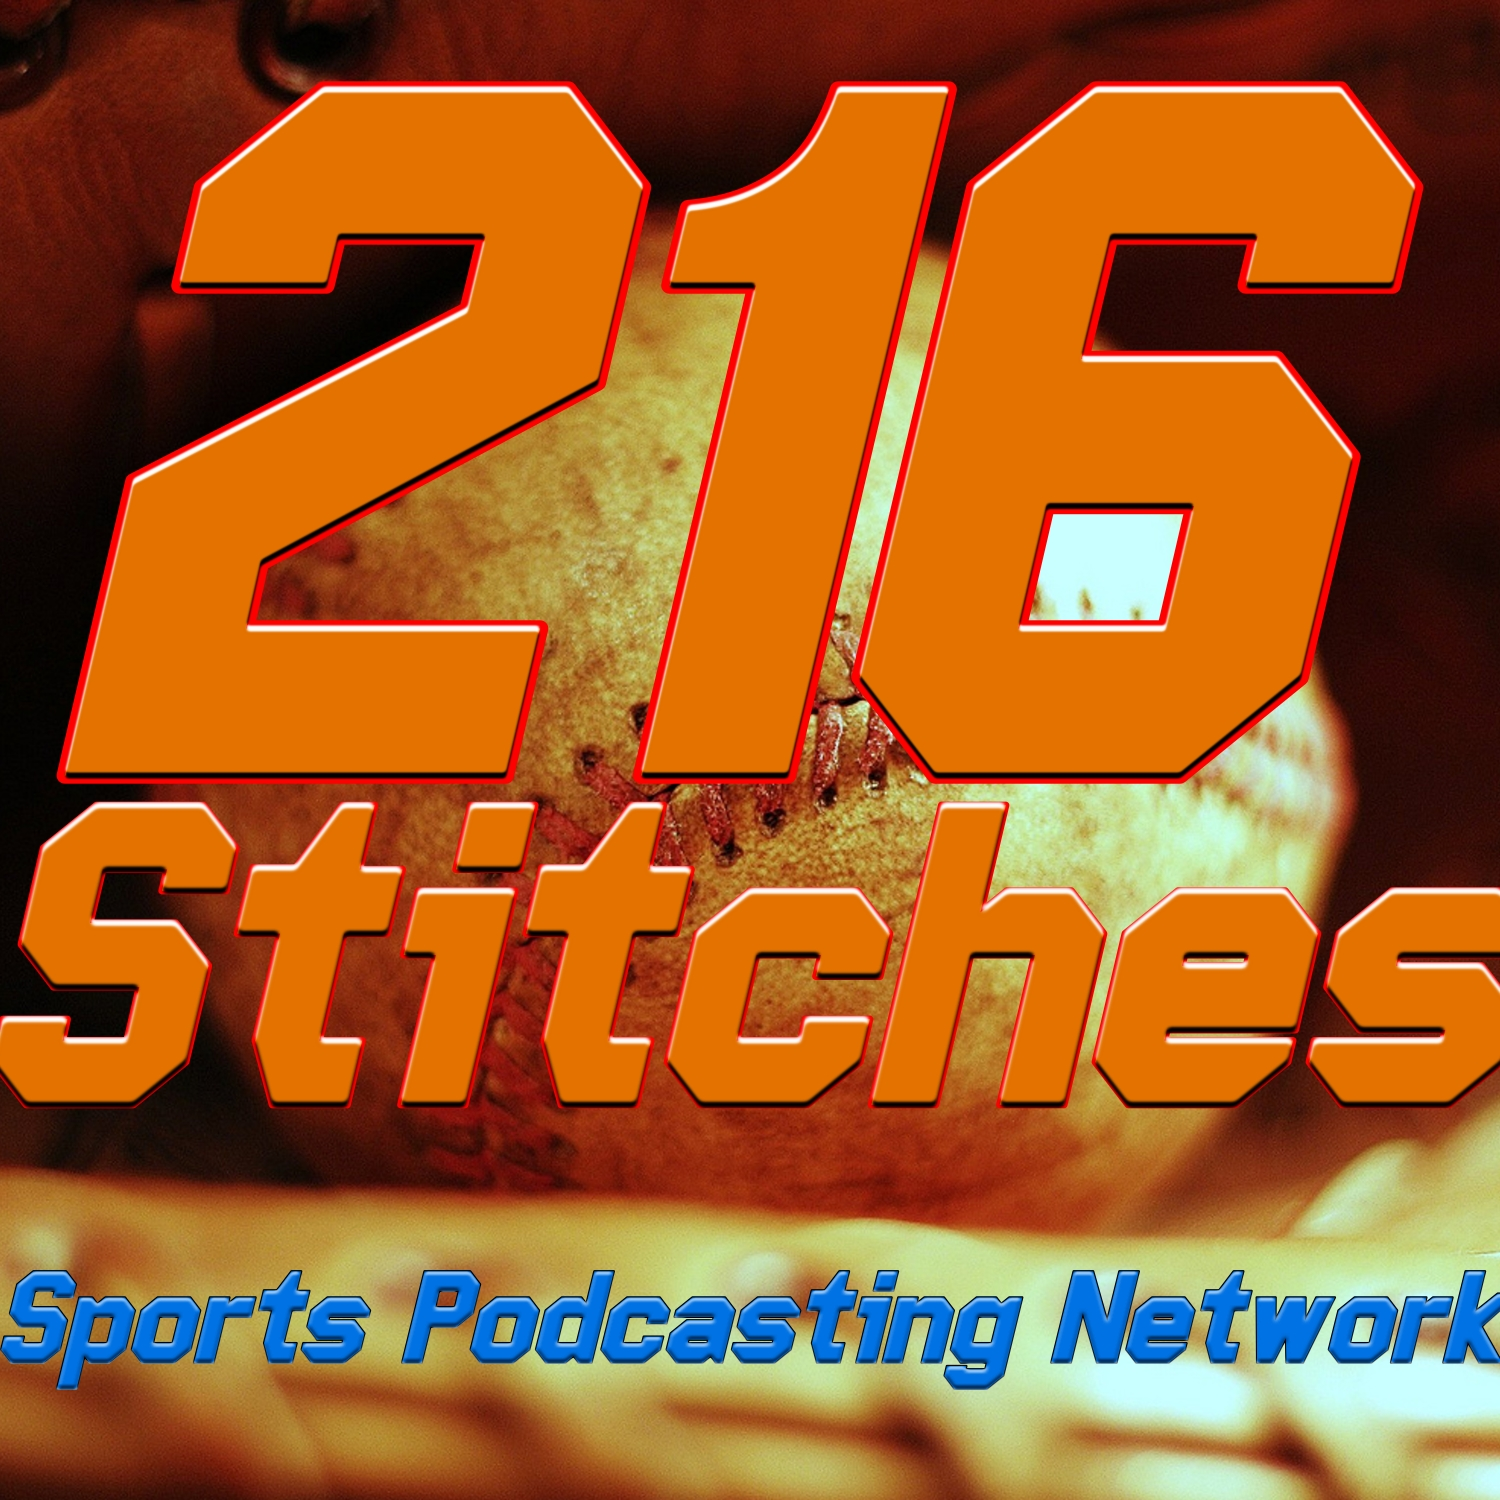 216 Stitches A Baseball Podcast – Sports Podcasting Network